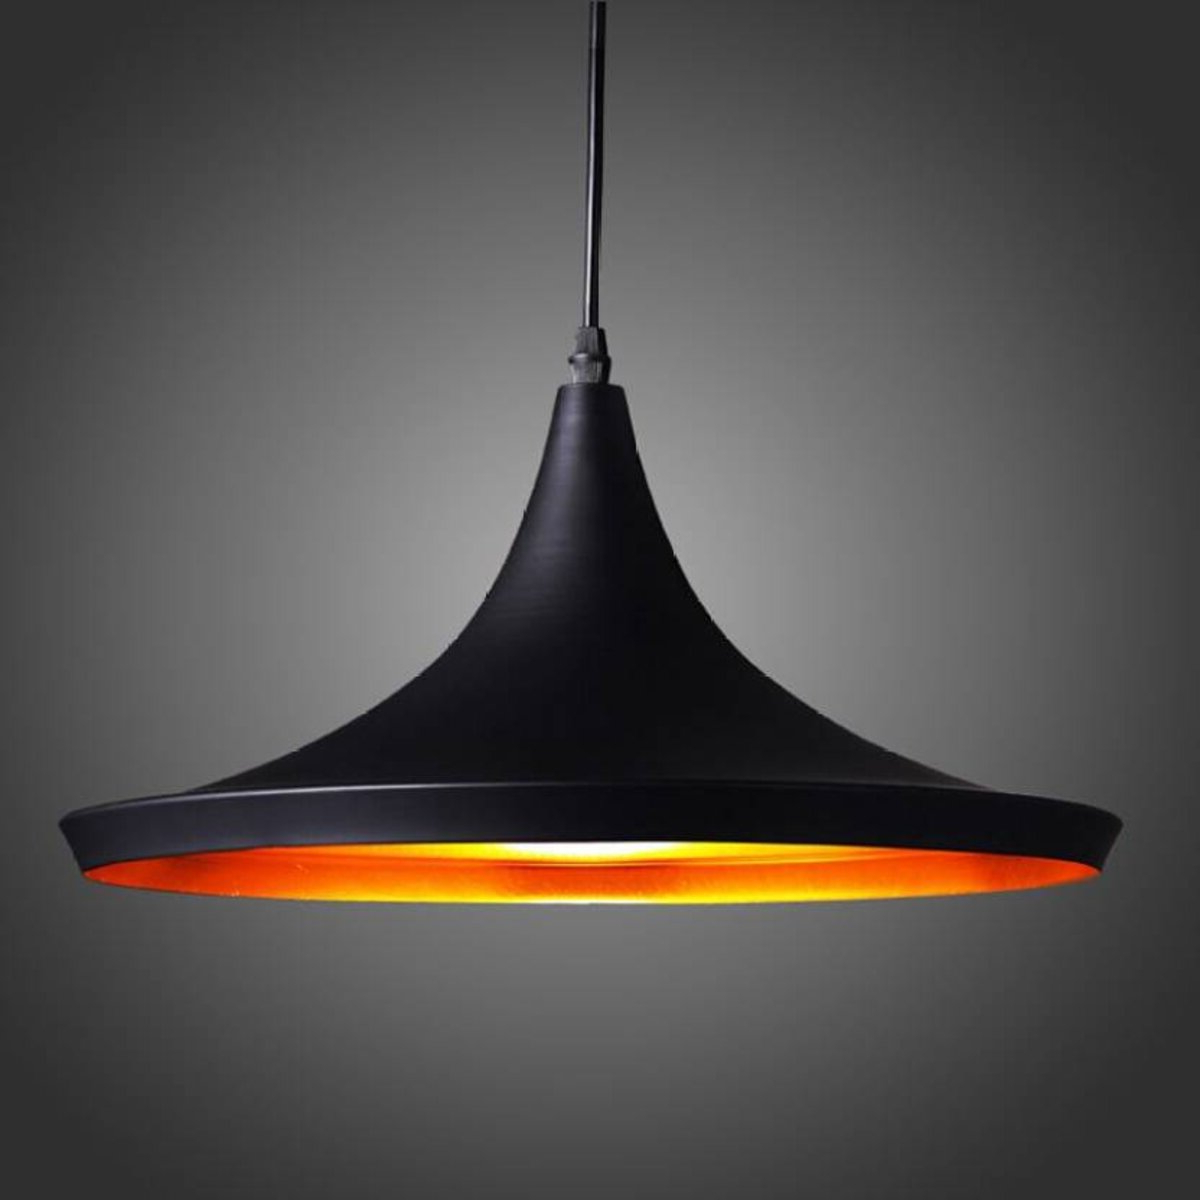 Details About Pendant Light Led Ceiling Lights Lamp Shade Industrial Cafe Lighting Kitchen Bar For Trendy Akash Industrial Vintage 1 Light Geometric Pendants (View 8 of 20)